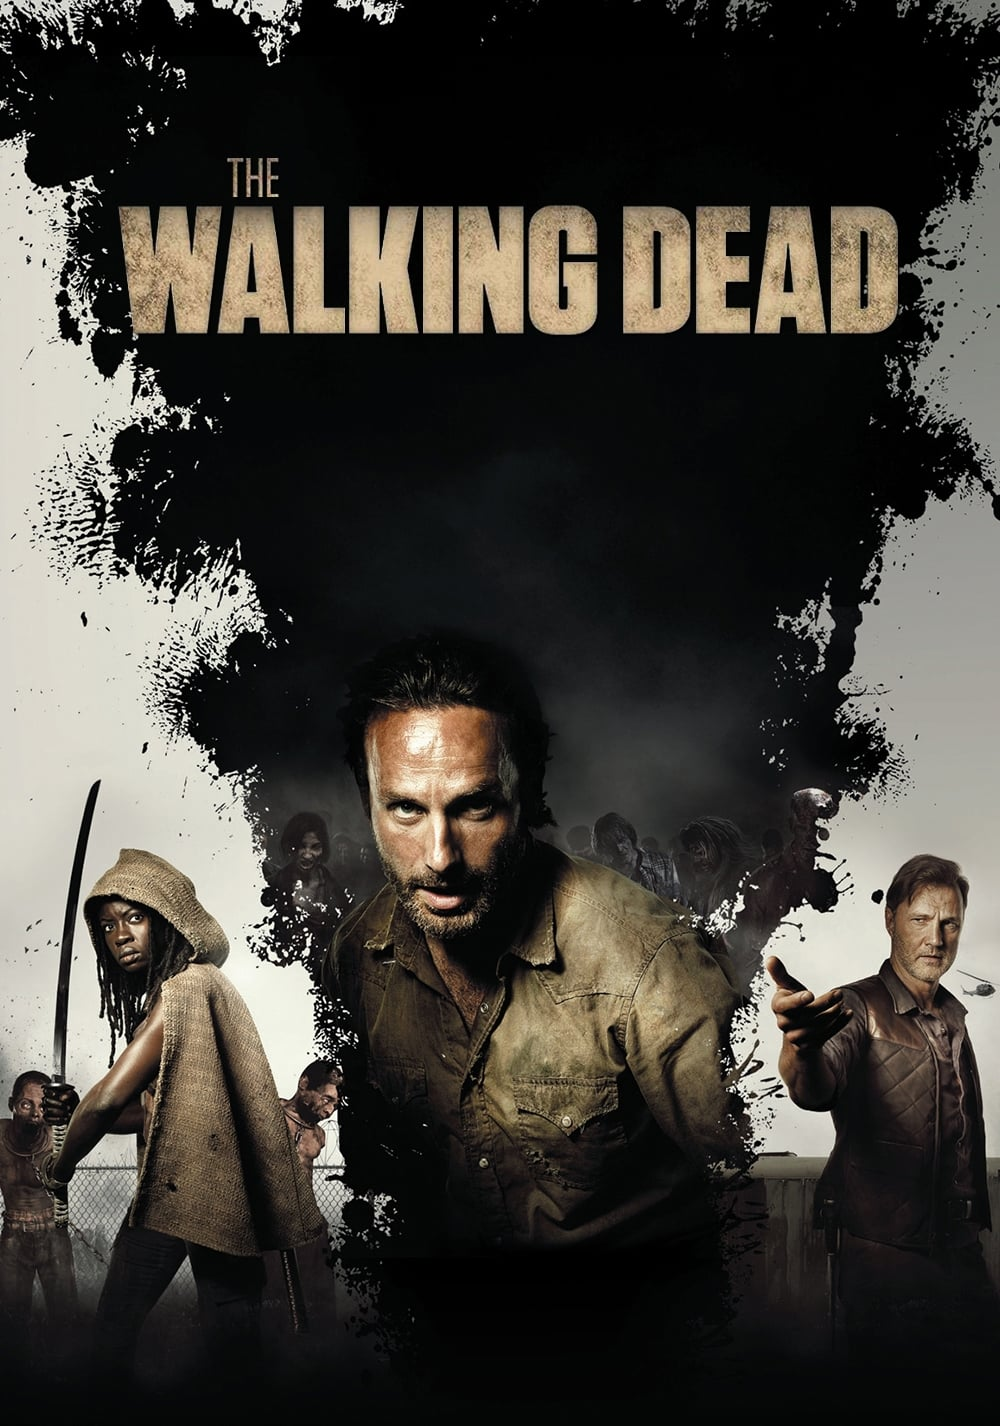 http://abroadlanguages.com/the-walking-dead-3-temporada-bluray-rip-720p-dublado/